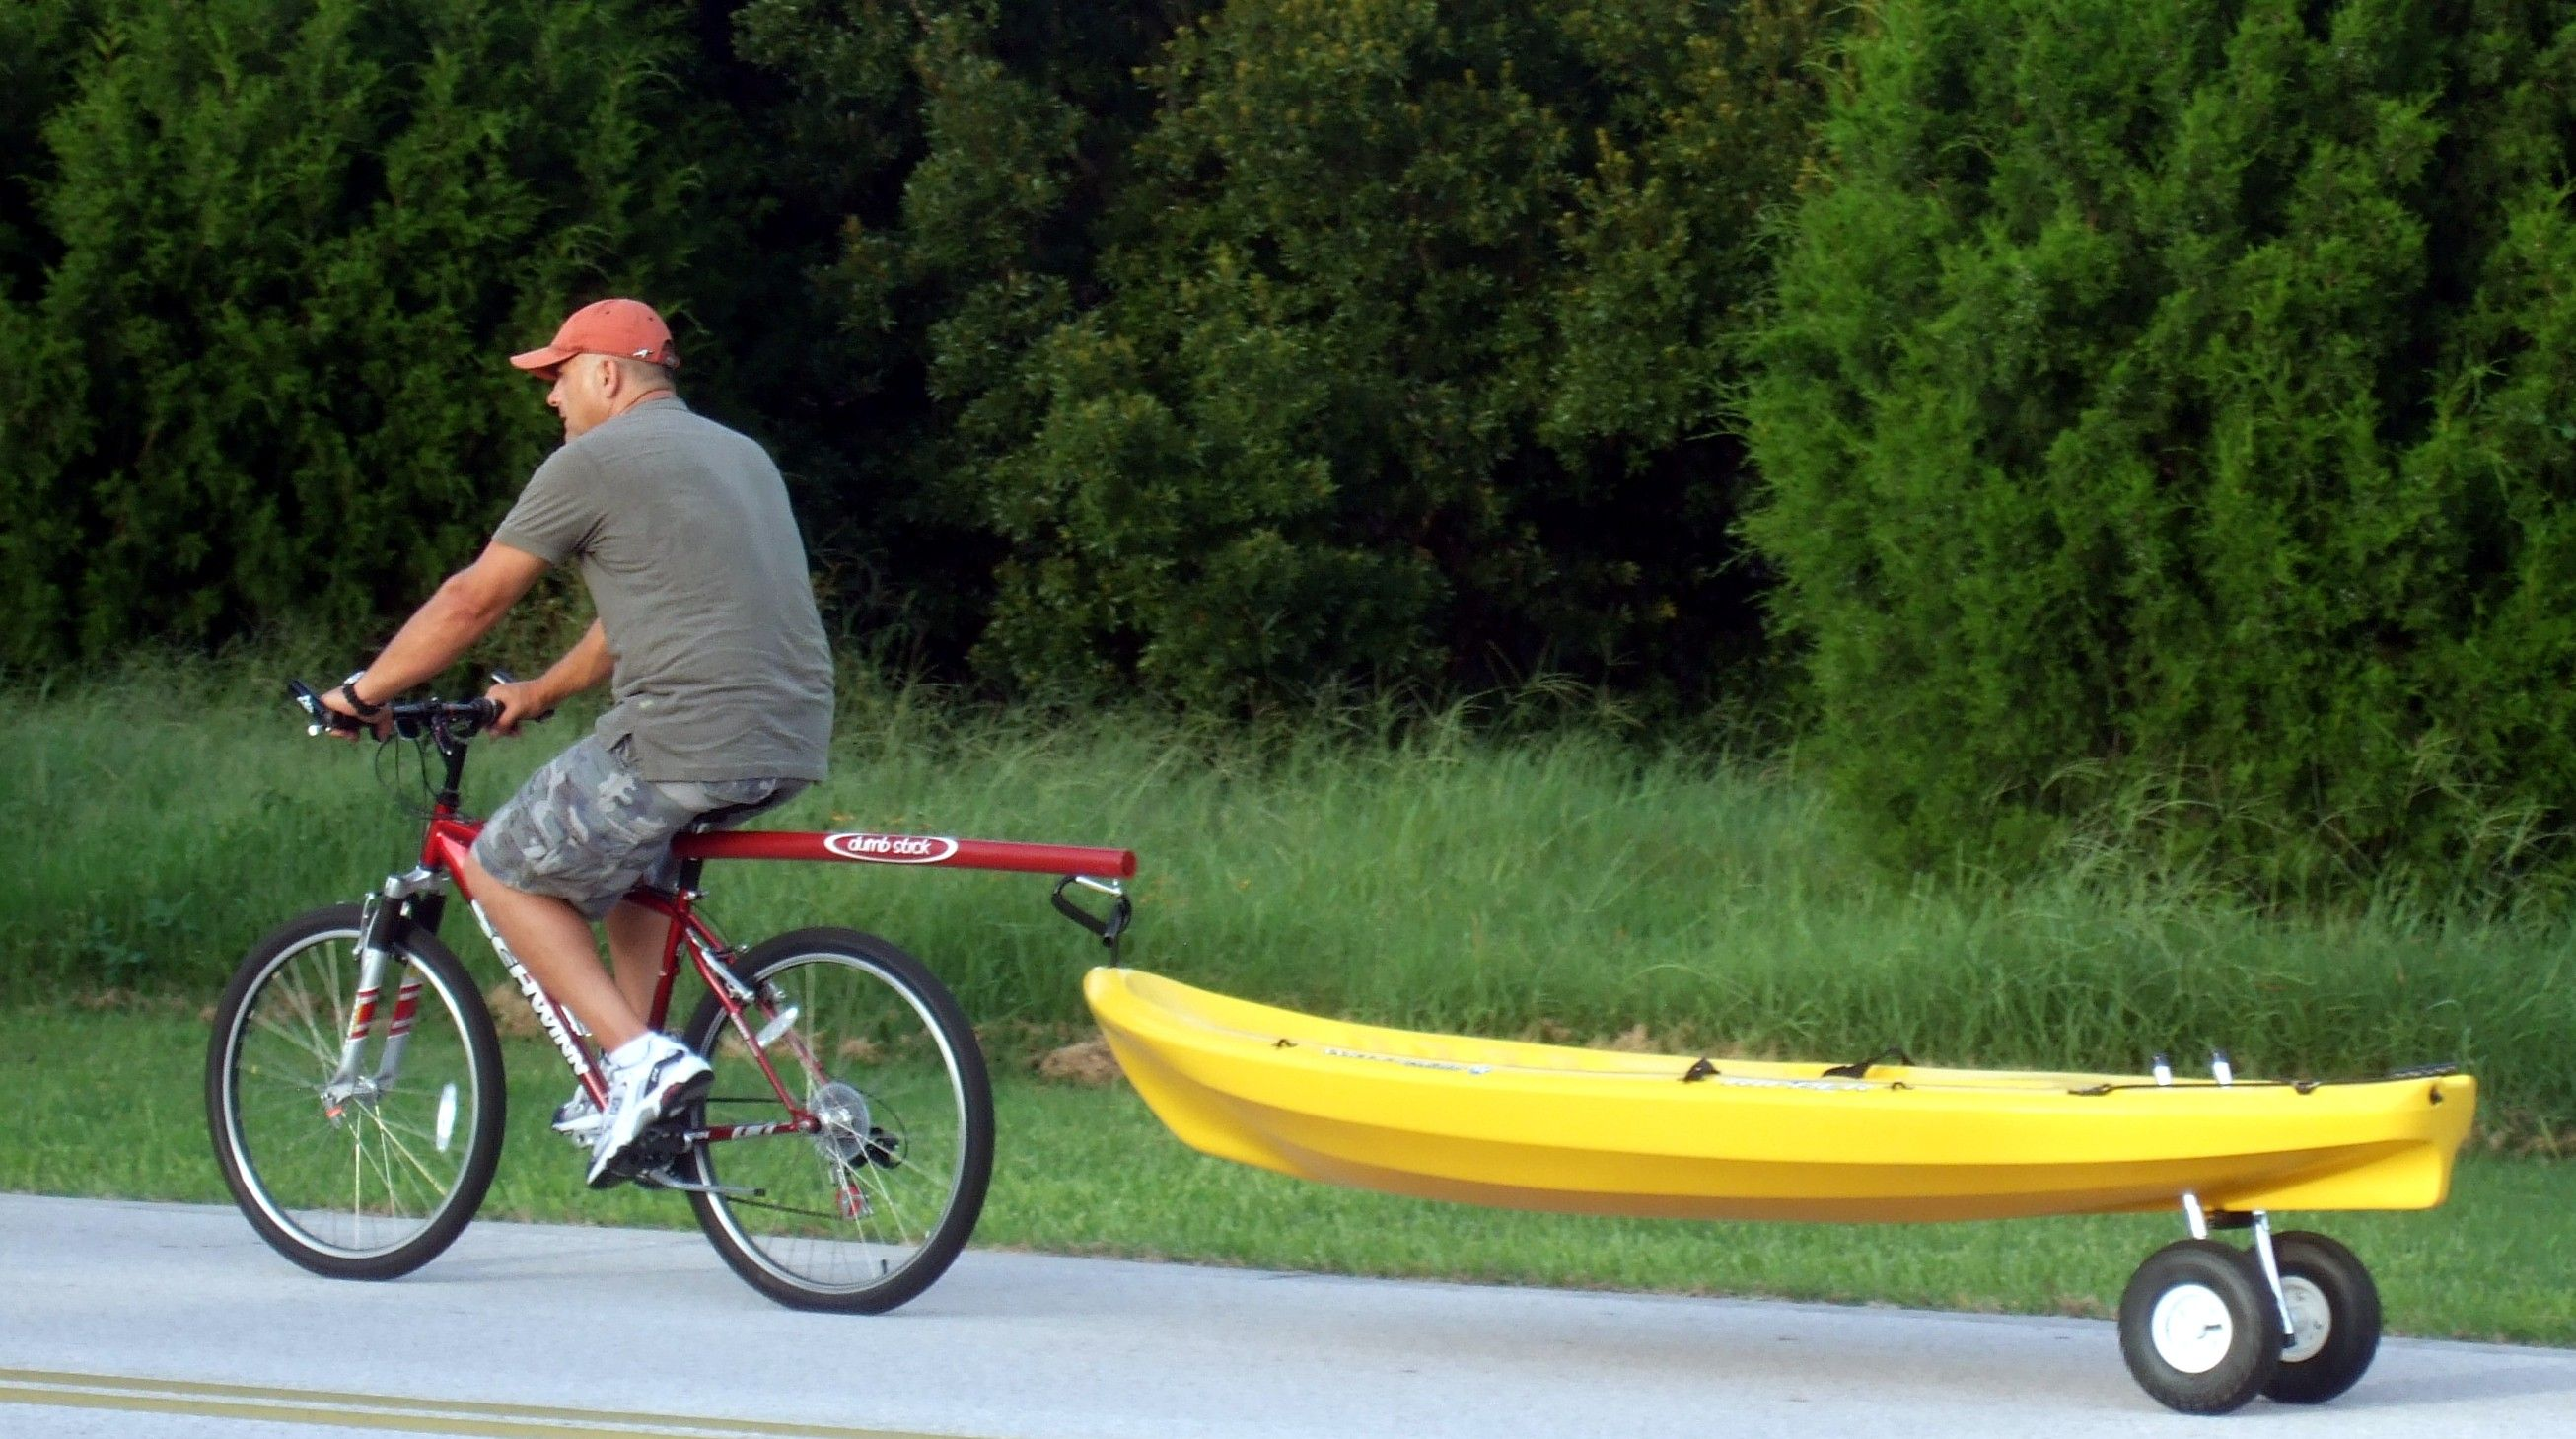 Www Dumb Stick Com Bicycle Tow Bar For Towing Your Kayak Canoe